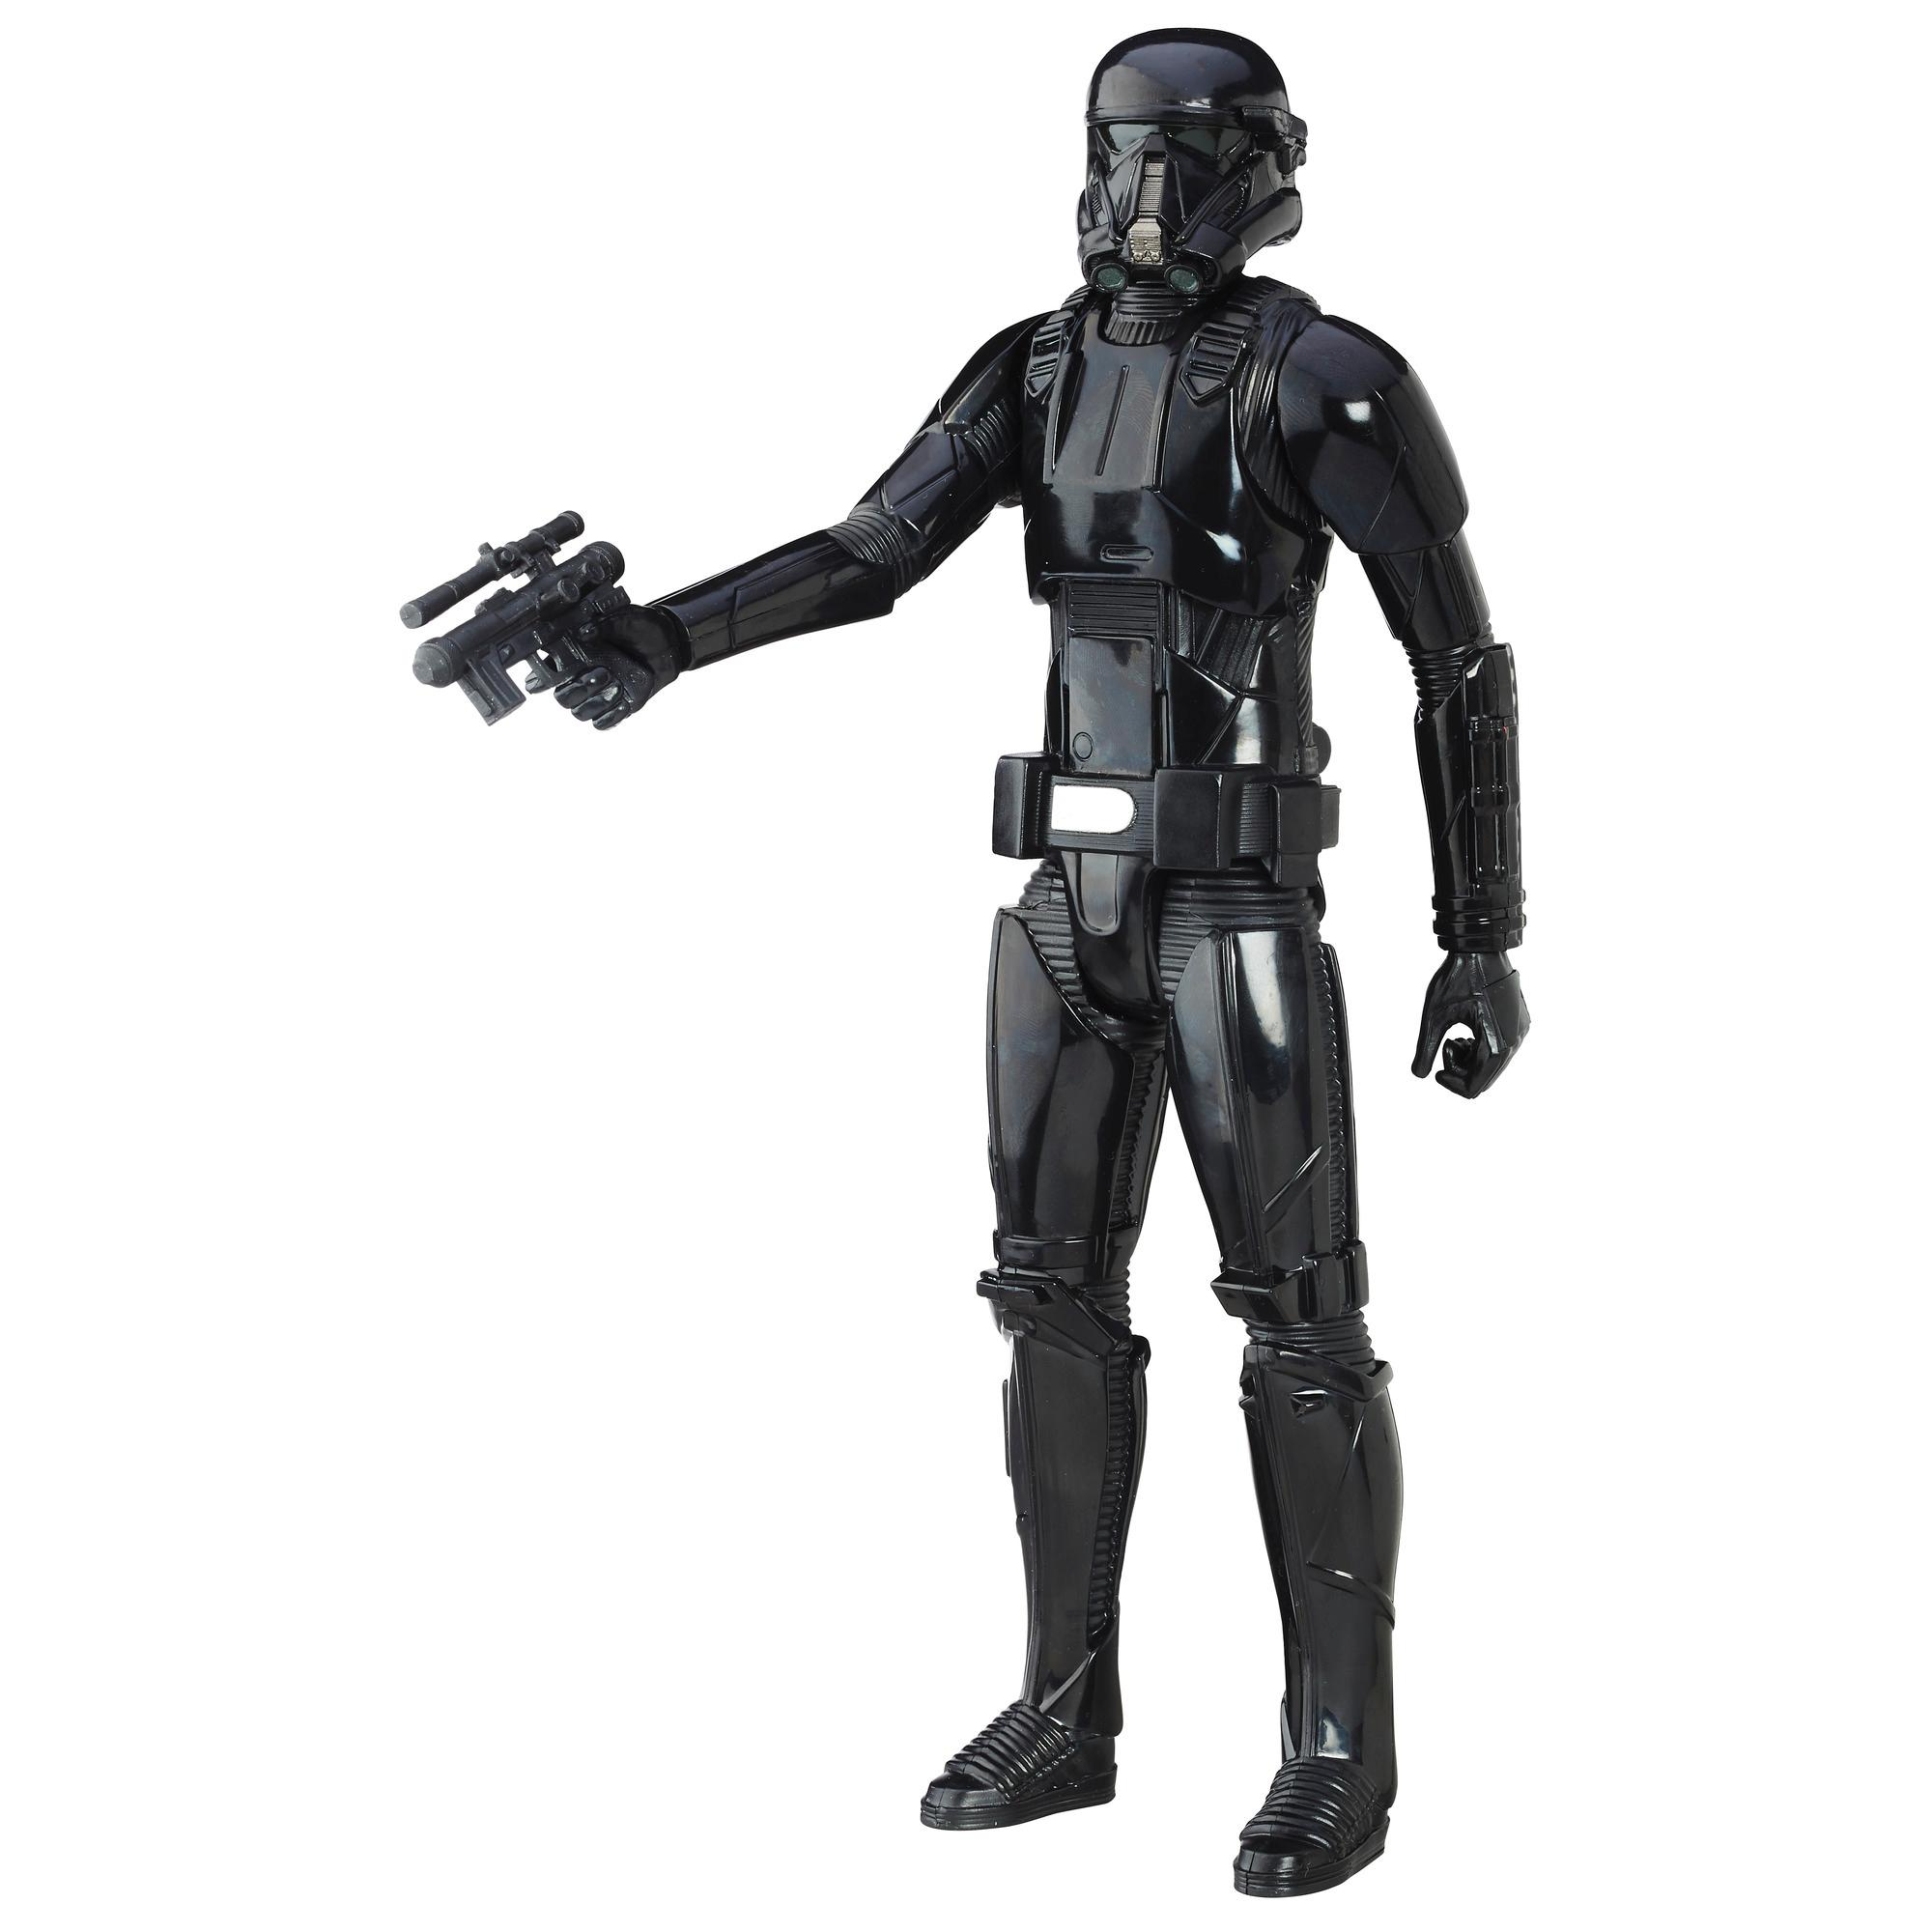 Star Wars Rogue One - Figura de 30 cm de soldado de la muerte imperial